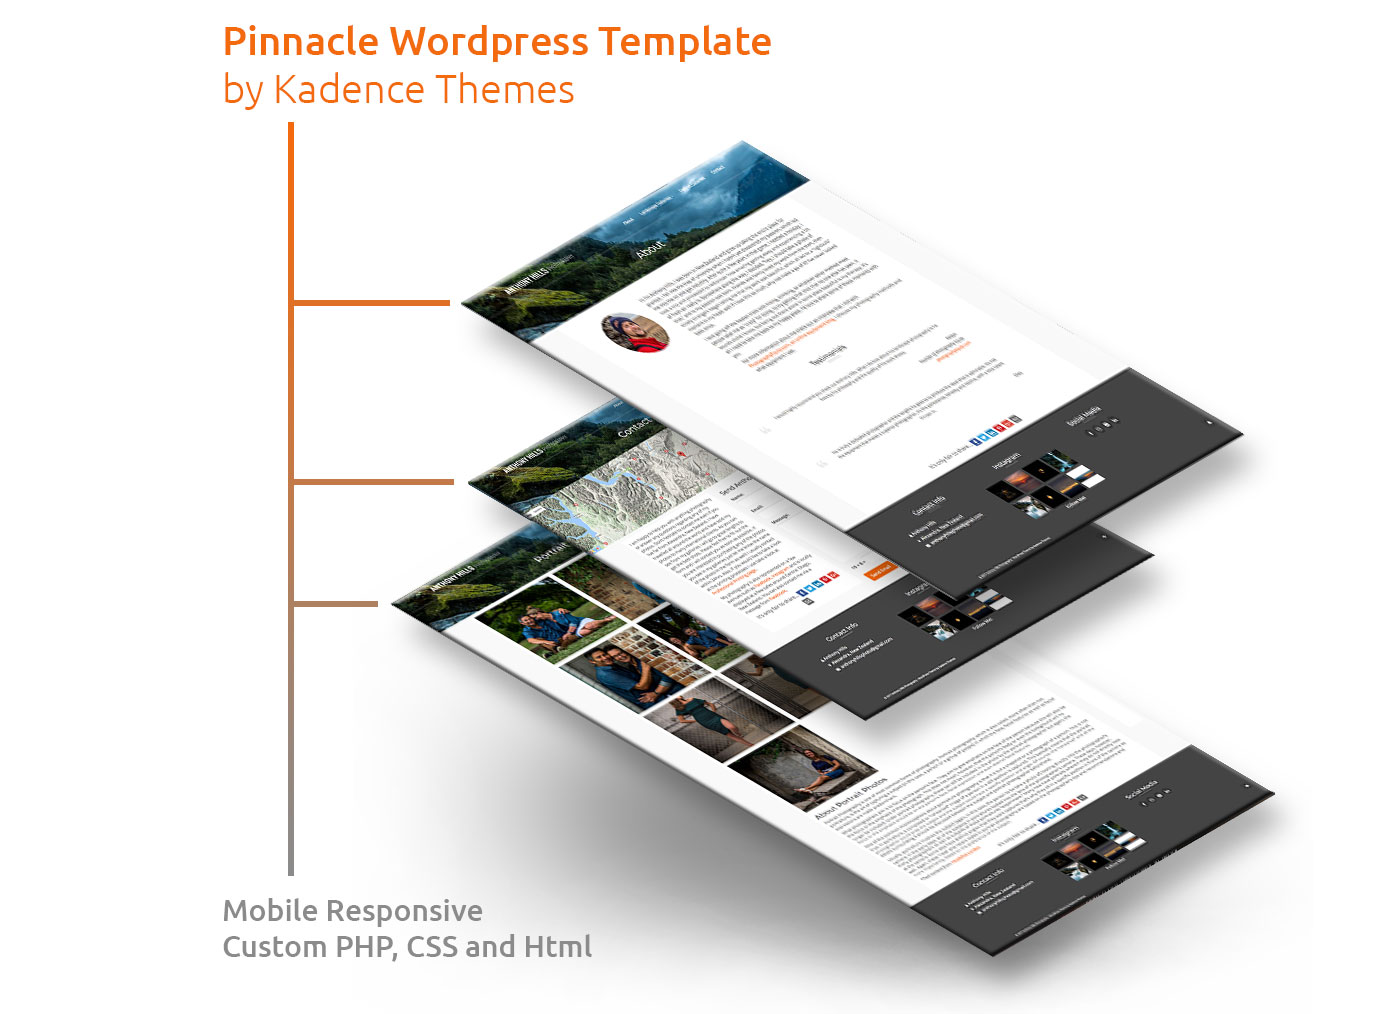 Pinnacle Wordpress Template example